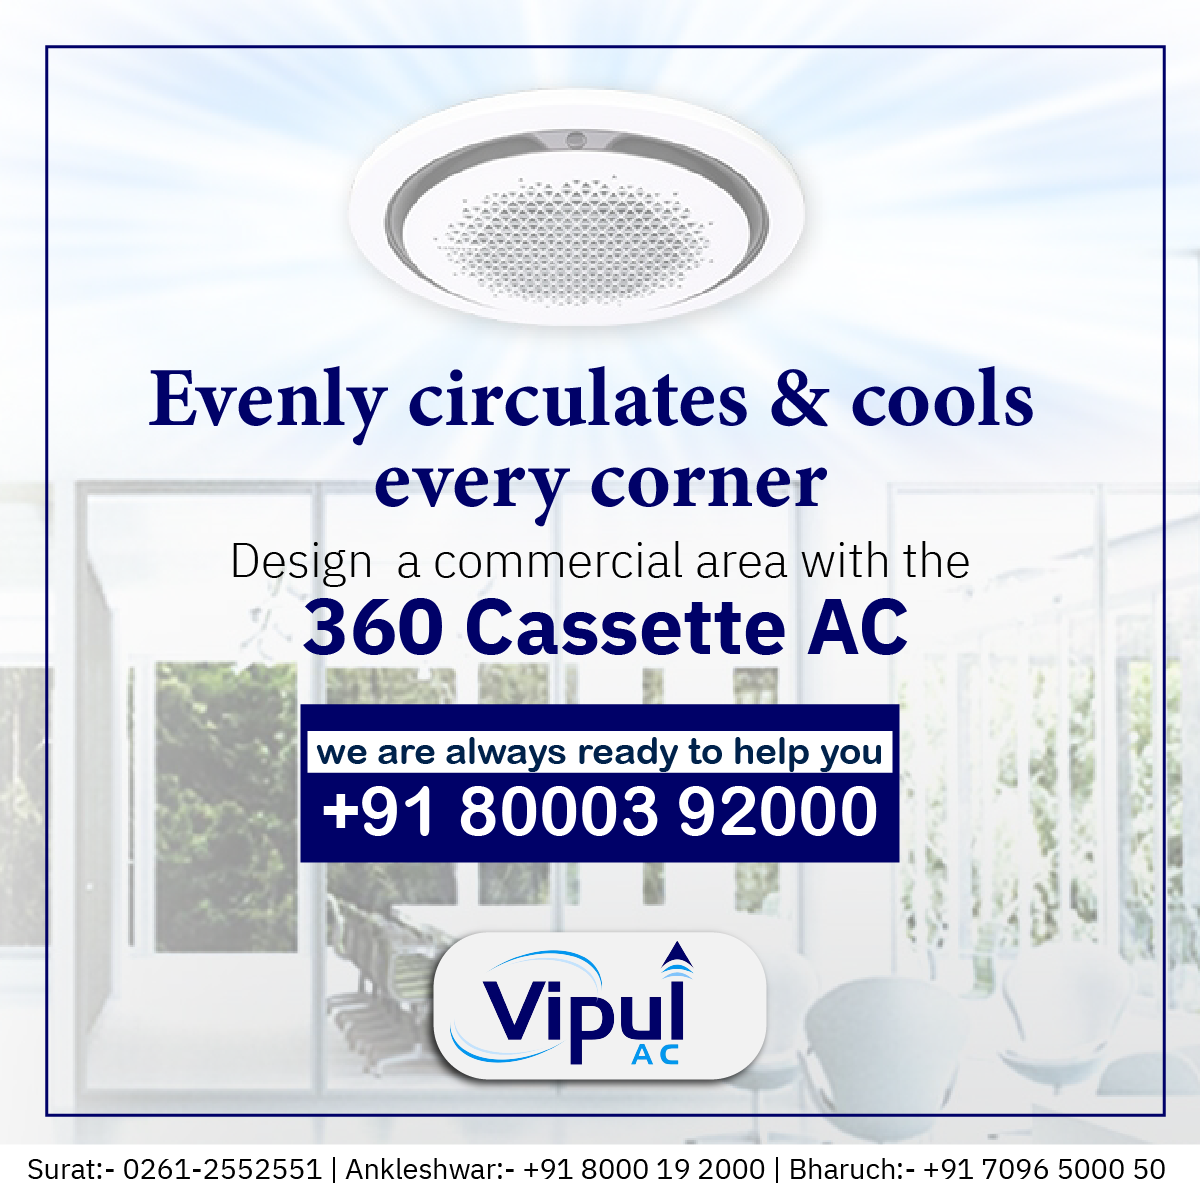 Stylish Design & Surround Cool Its innovative circular